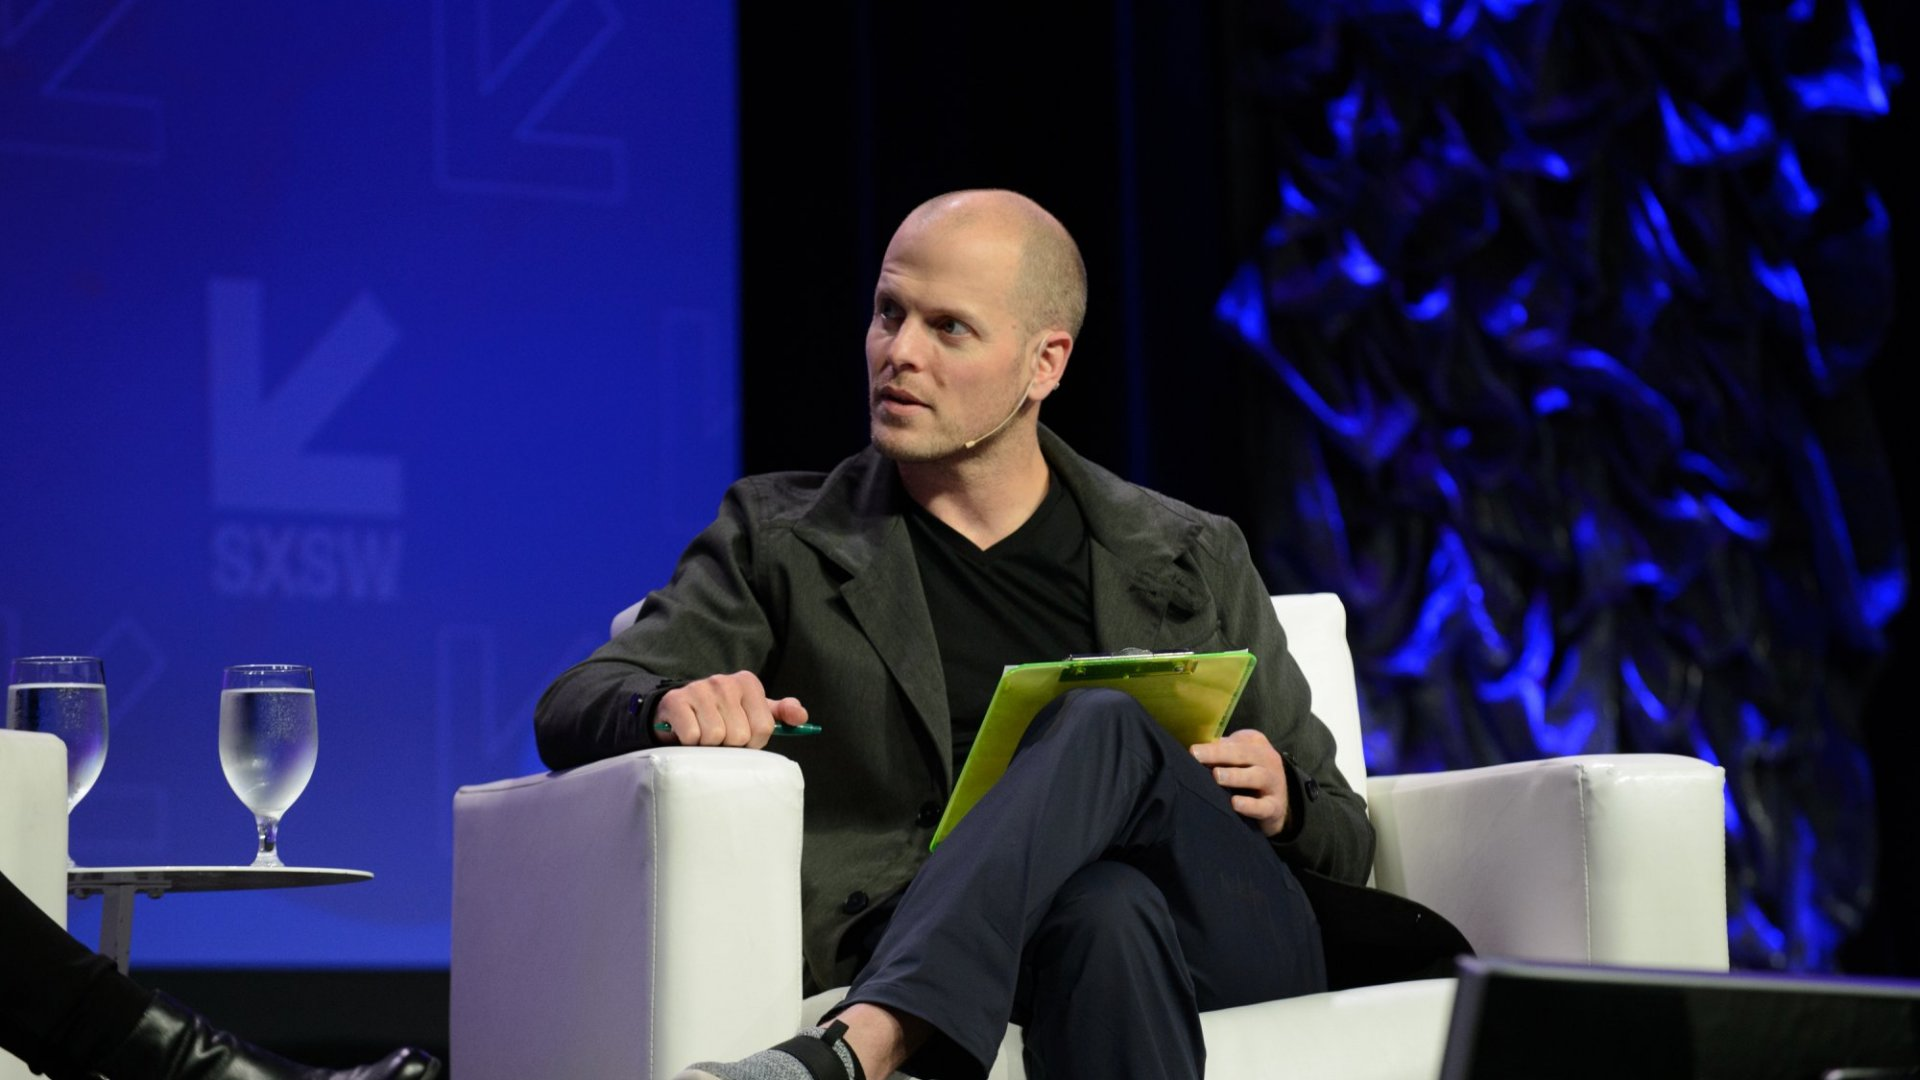 According to Tim Ferriss This 1 Book Will Transform Your Business